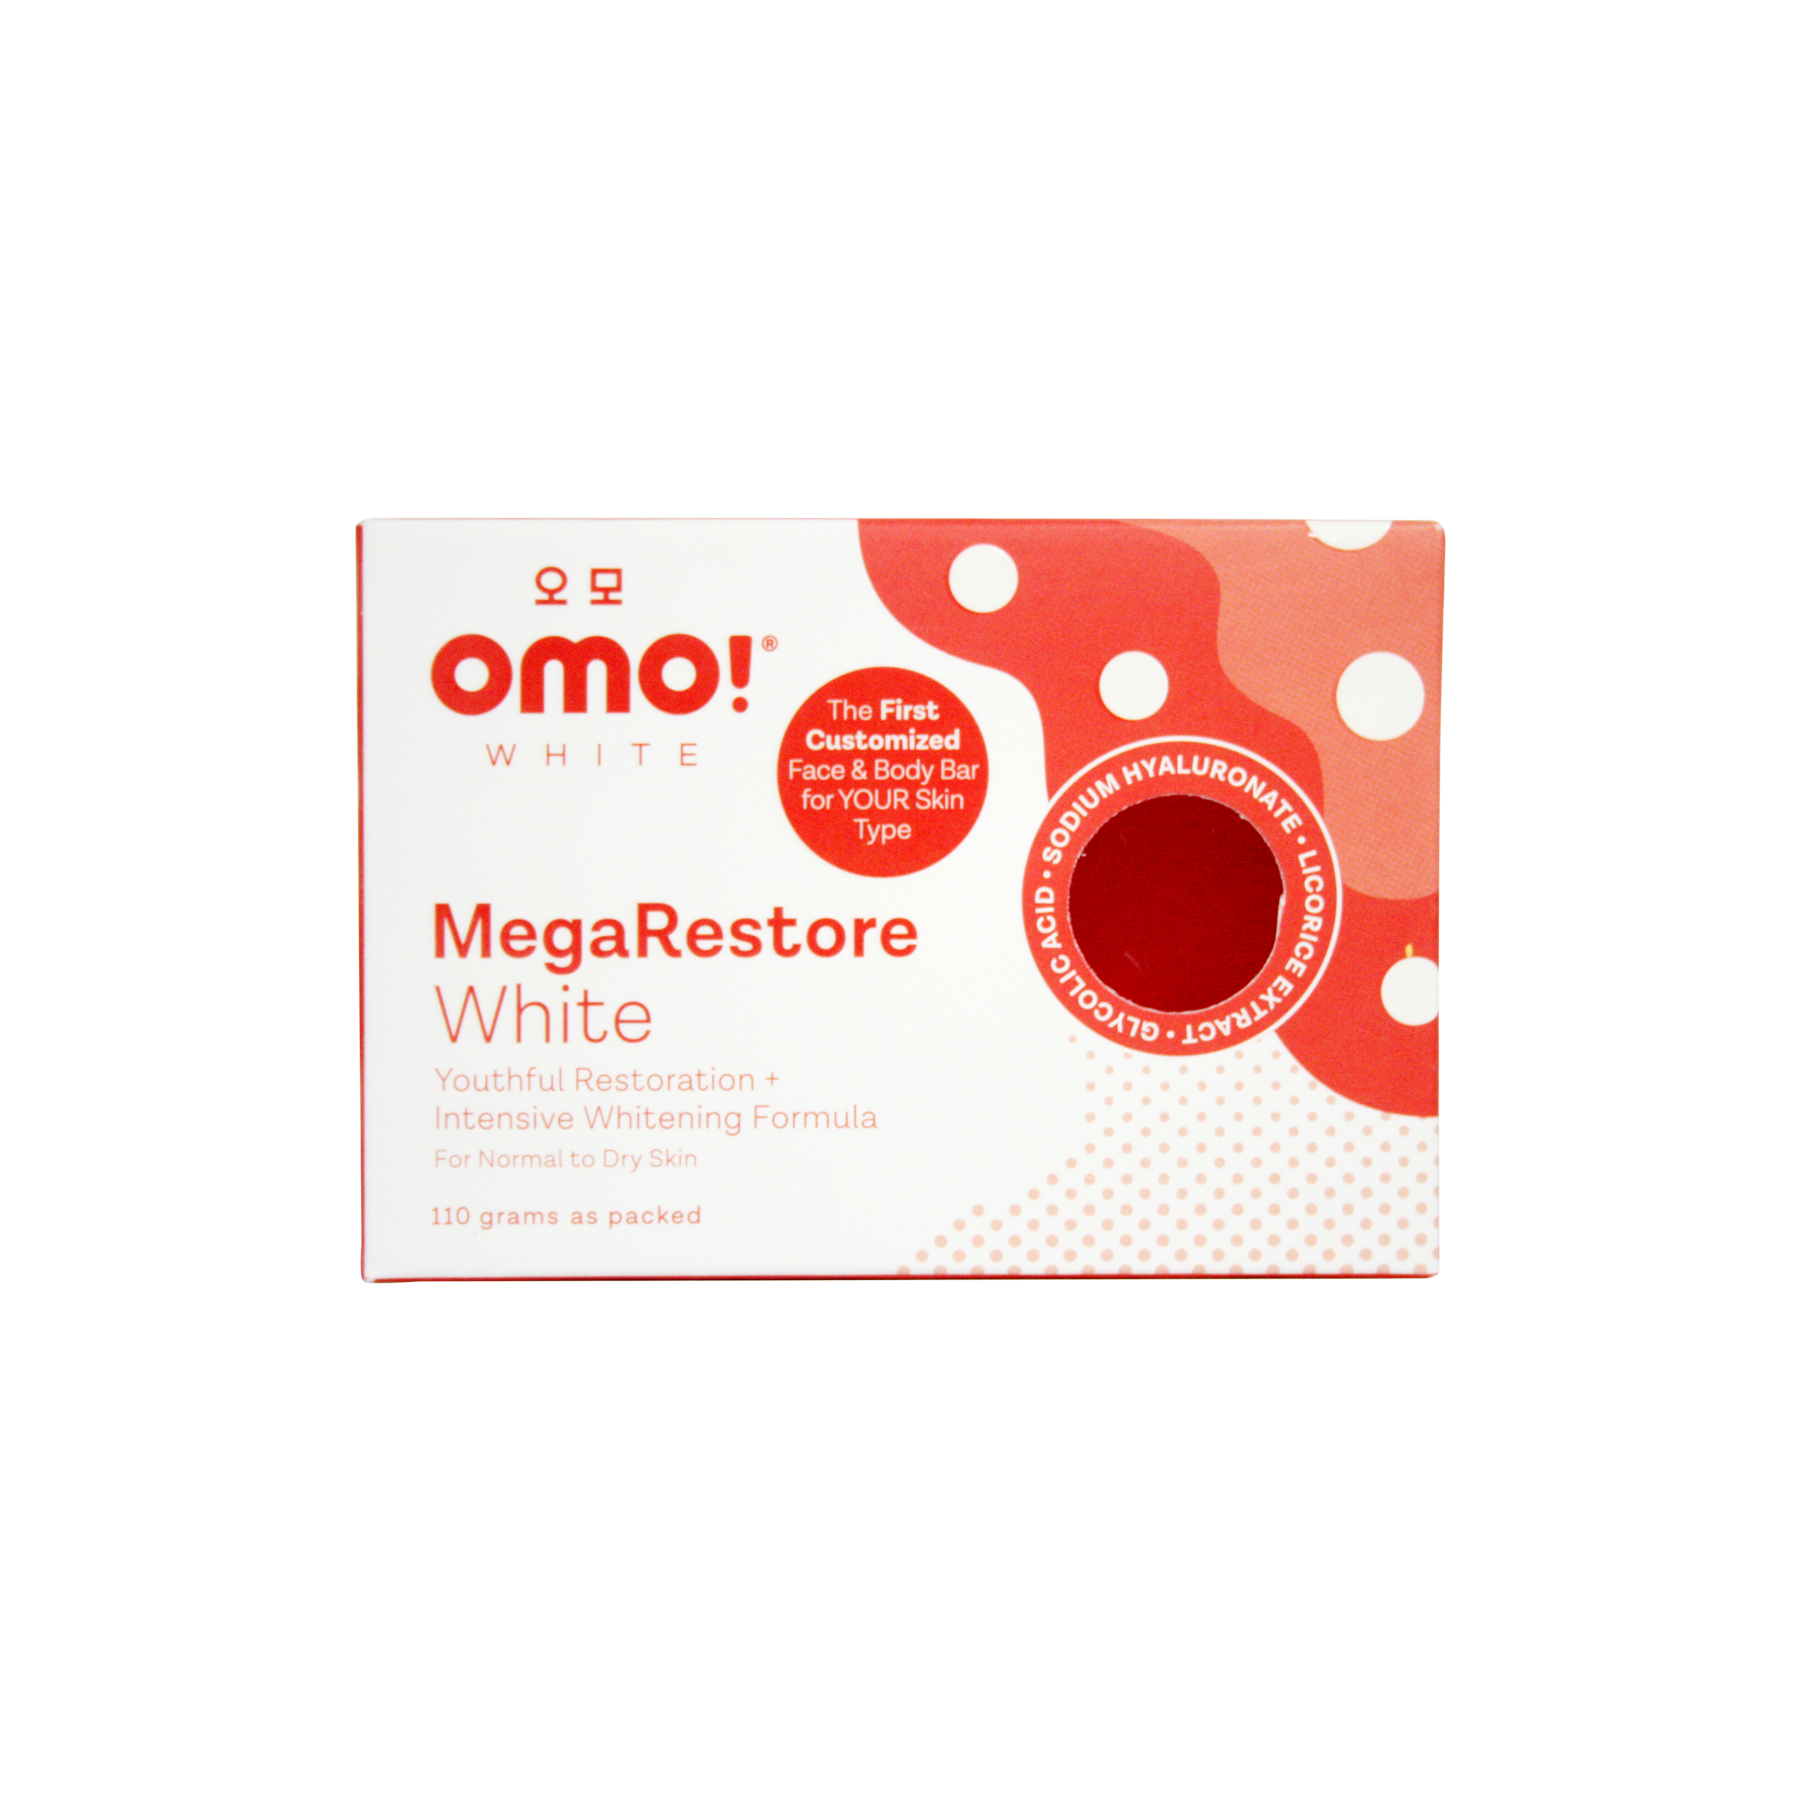 White MegaRestore Anti-Aging + Intensive Whitening Formula Face & Body Soap (110g) by OMO! White